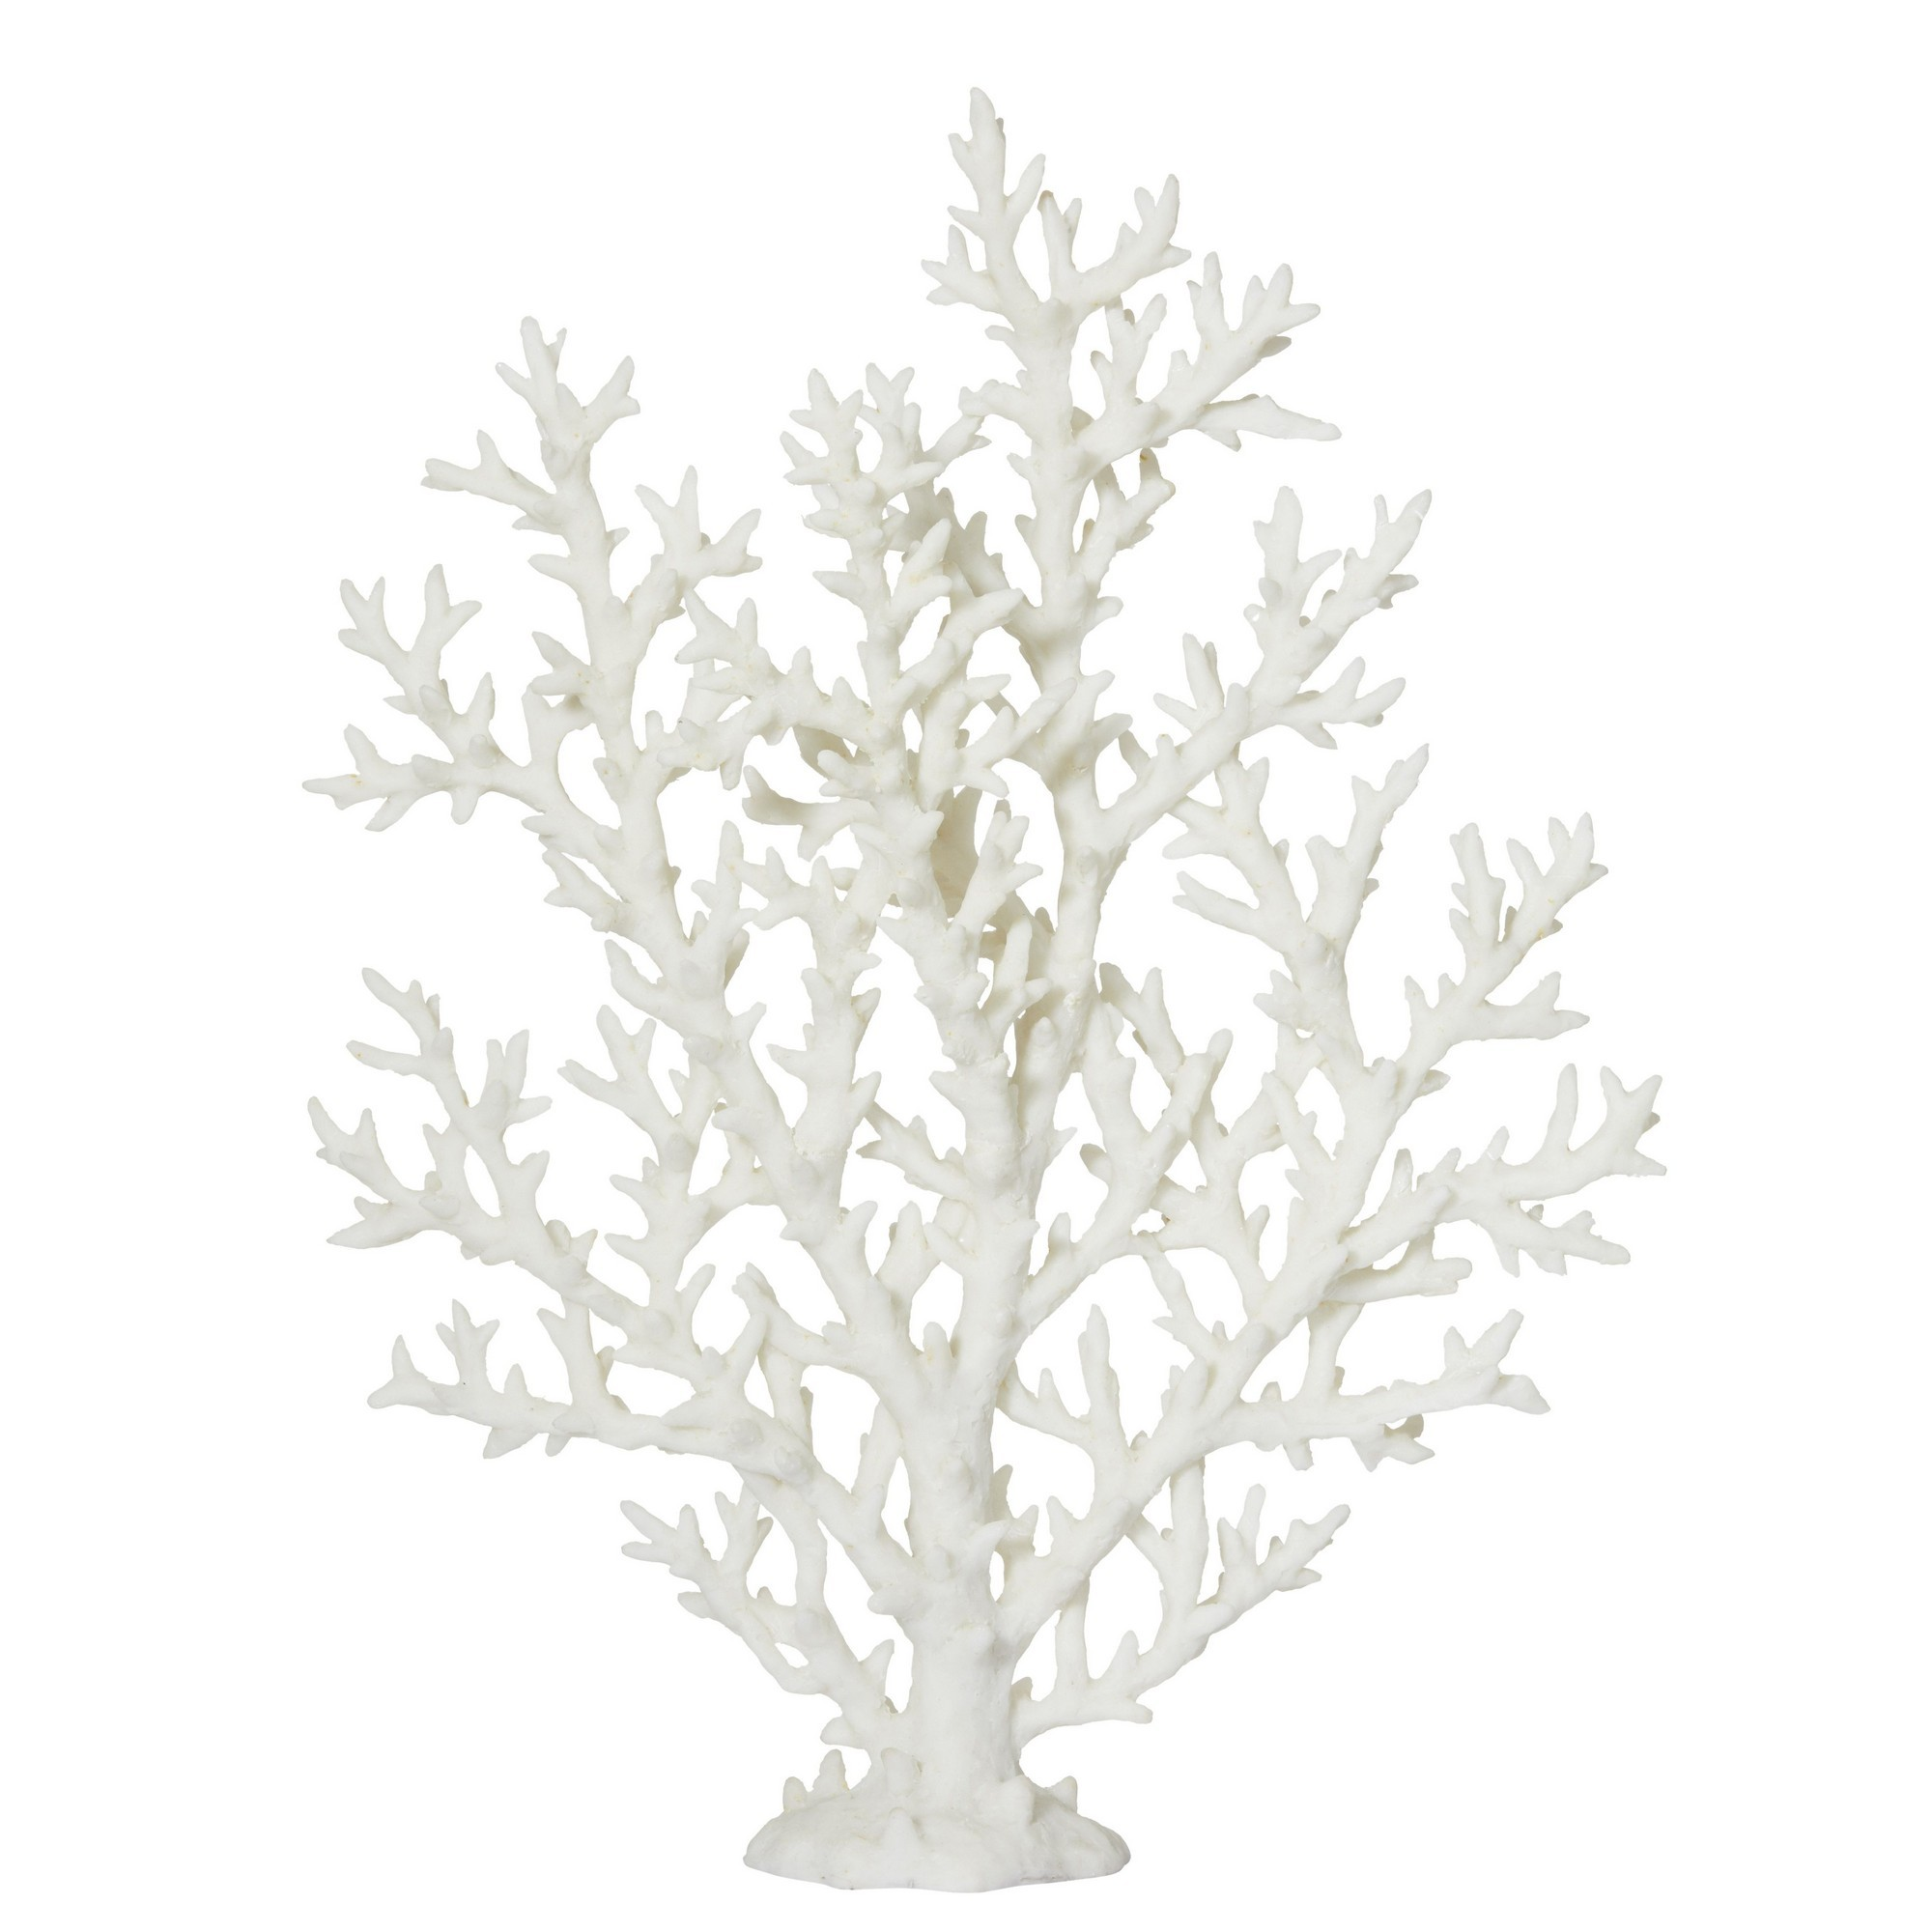 Staghorn Coral Sculpture Ornament